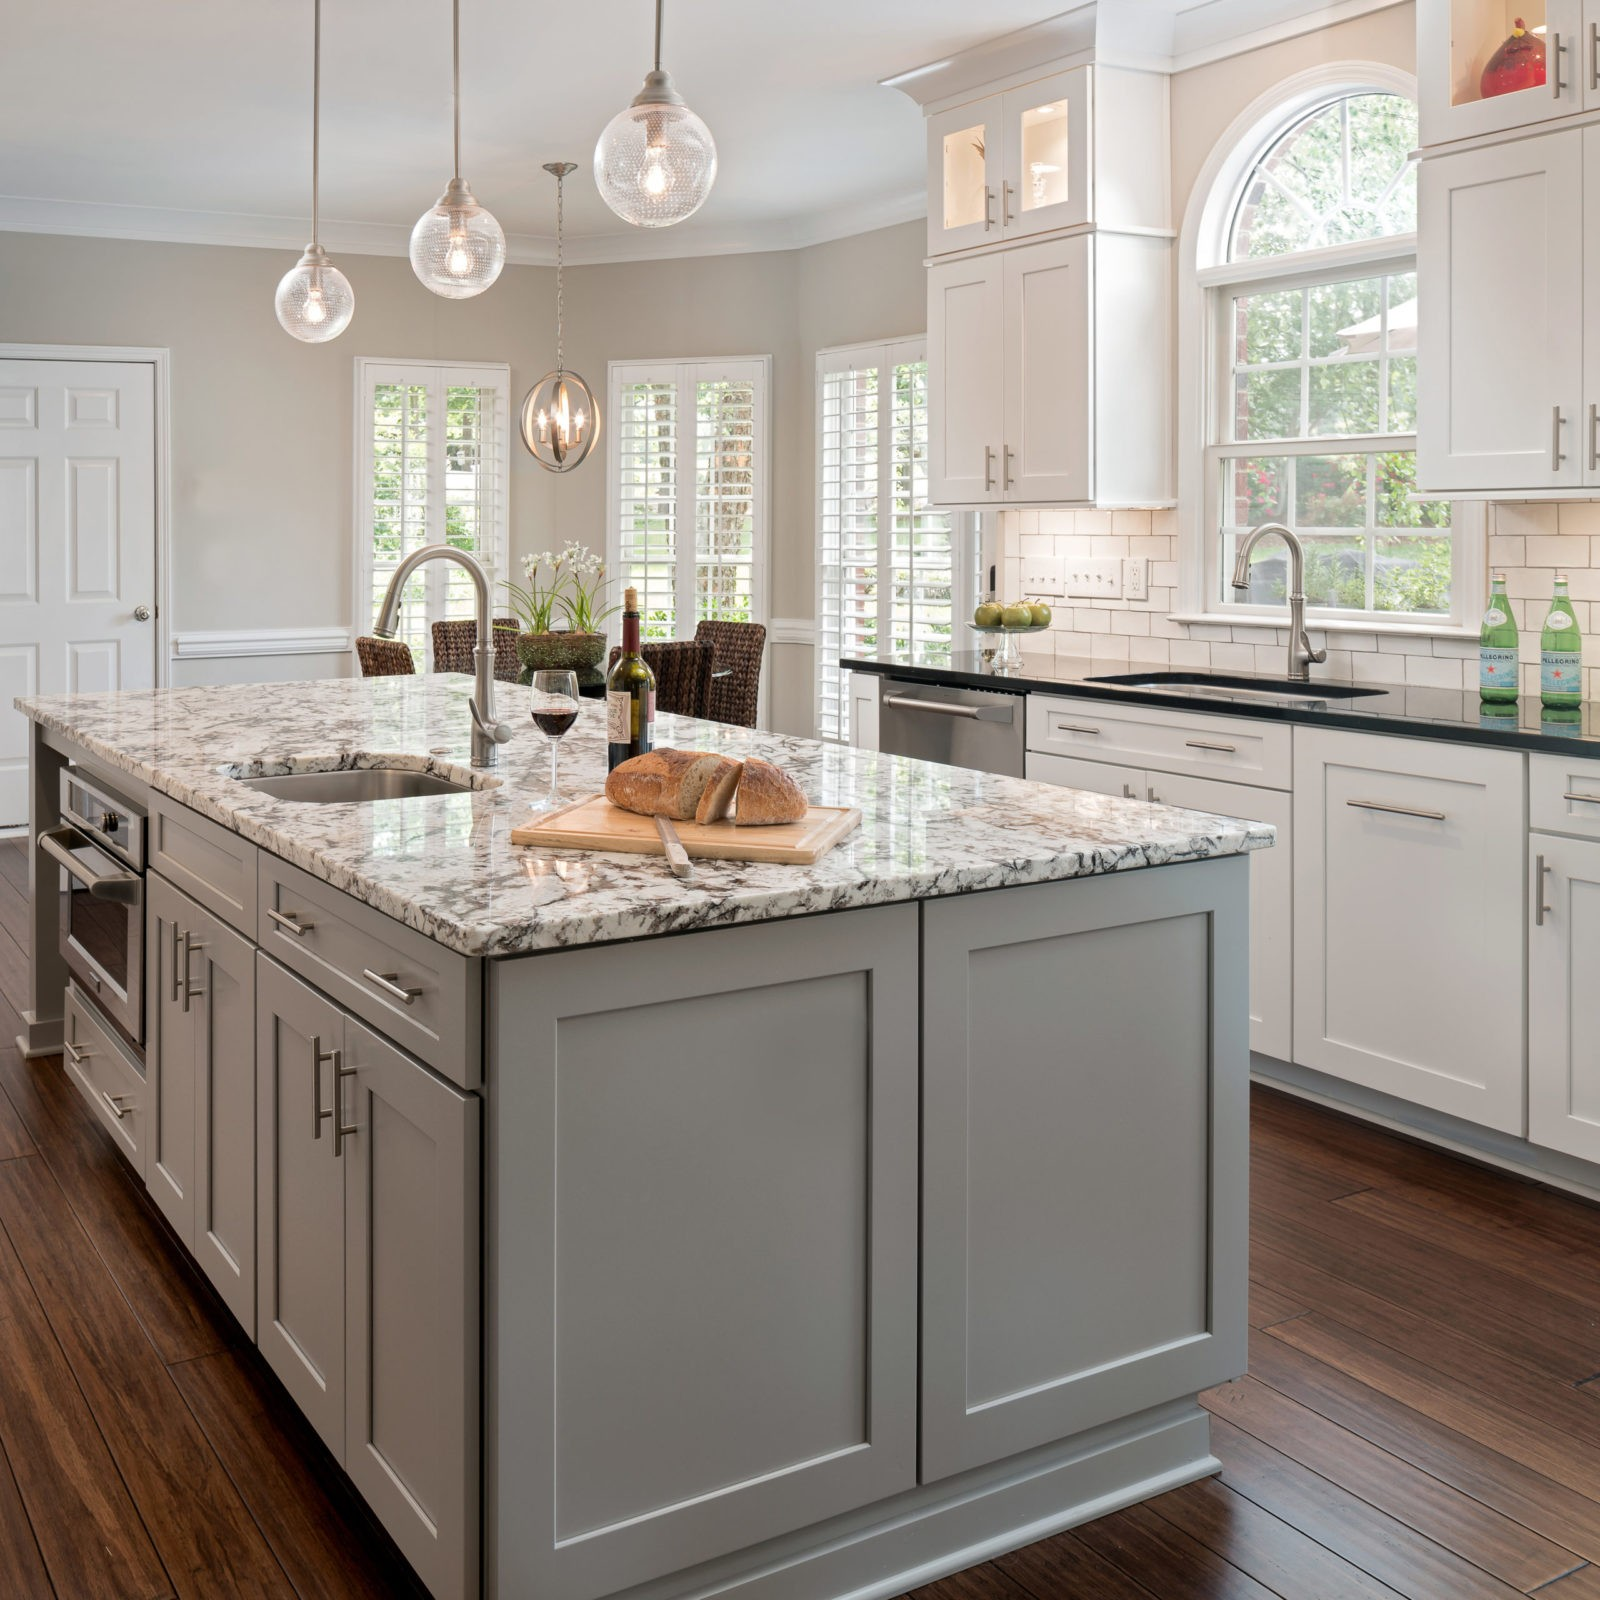 gray-and-white-shaker-style-kitchen